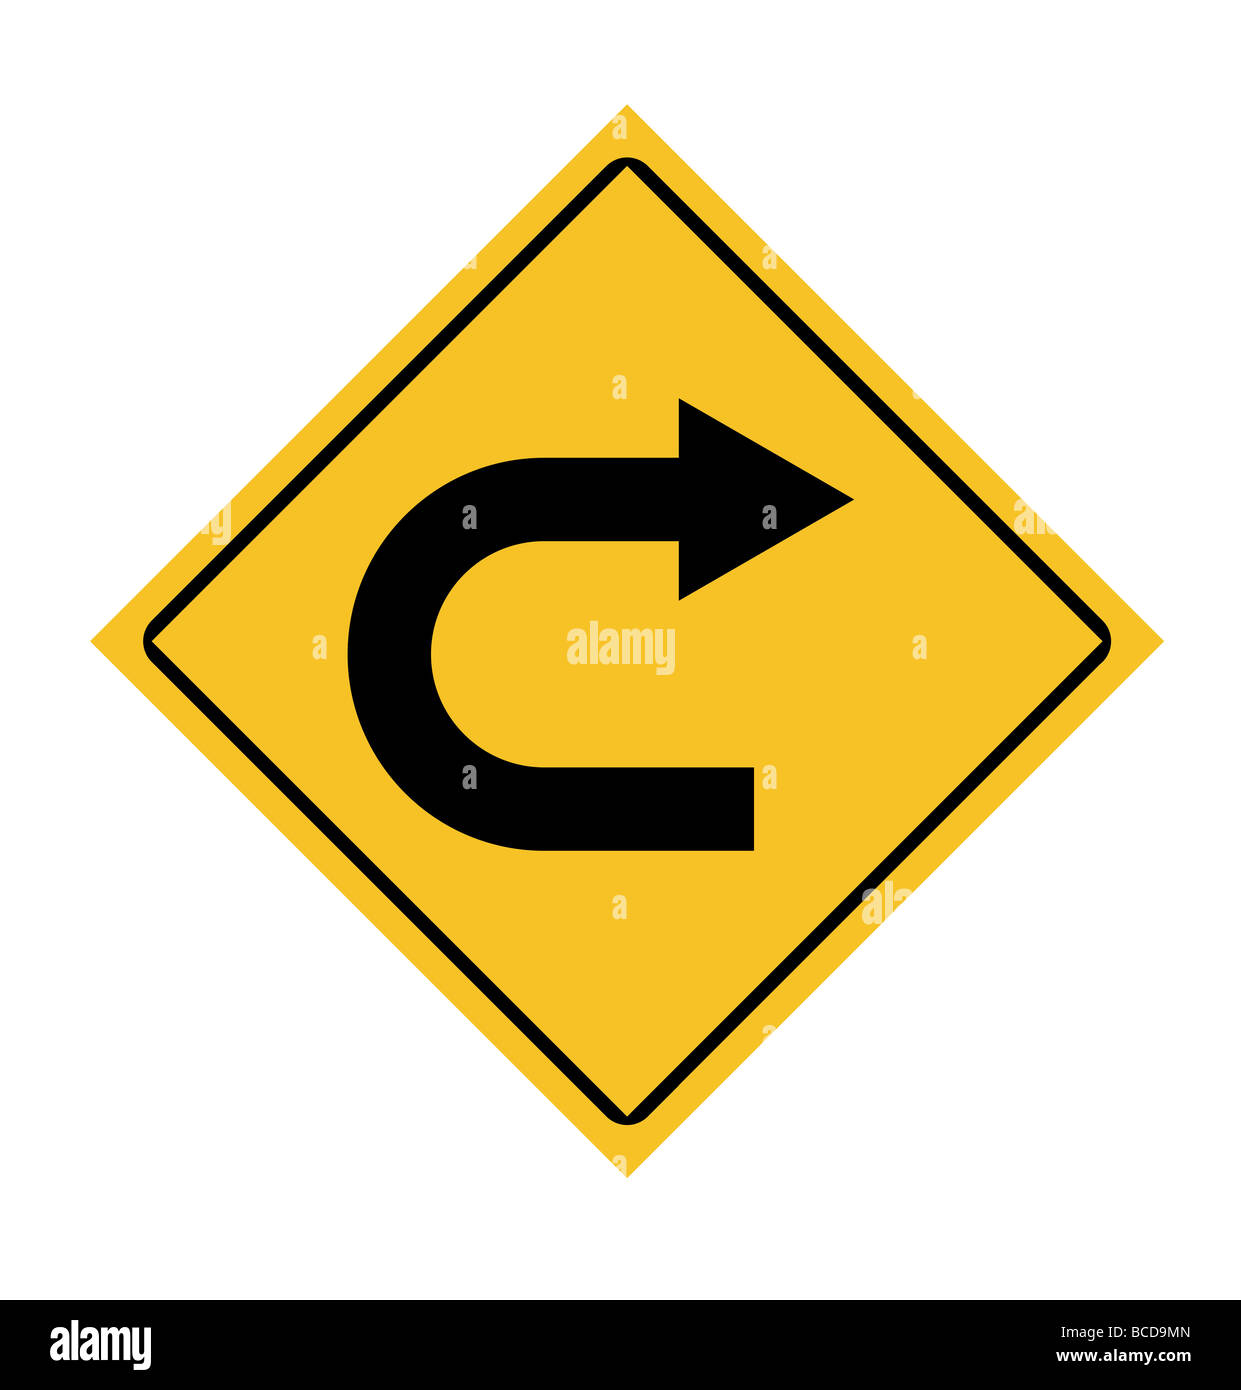 Traffic road sign with right turn arrow - Stock Image